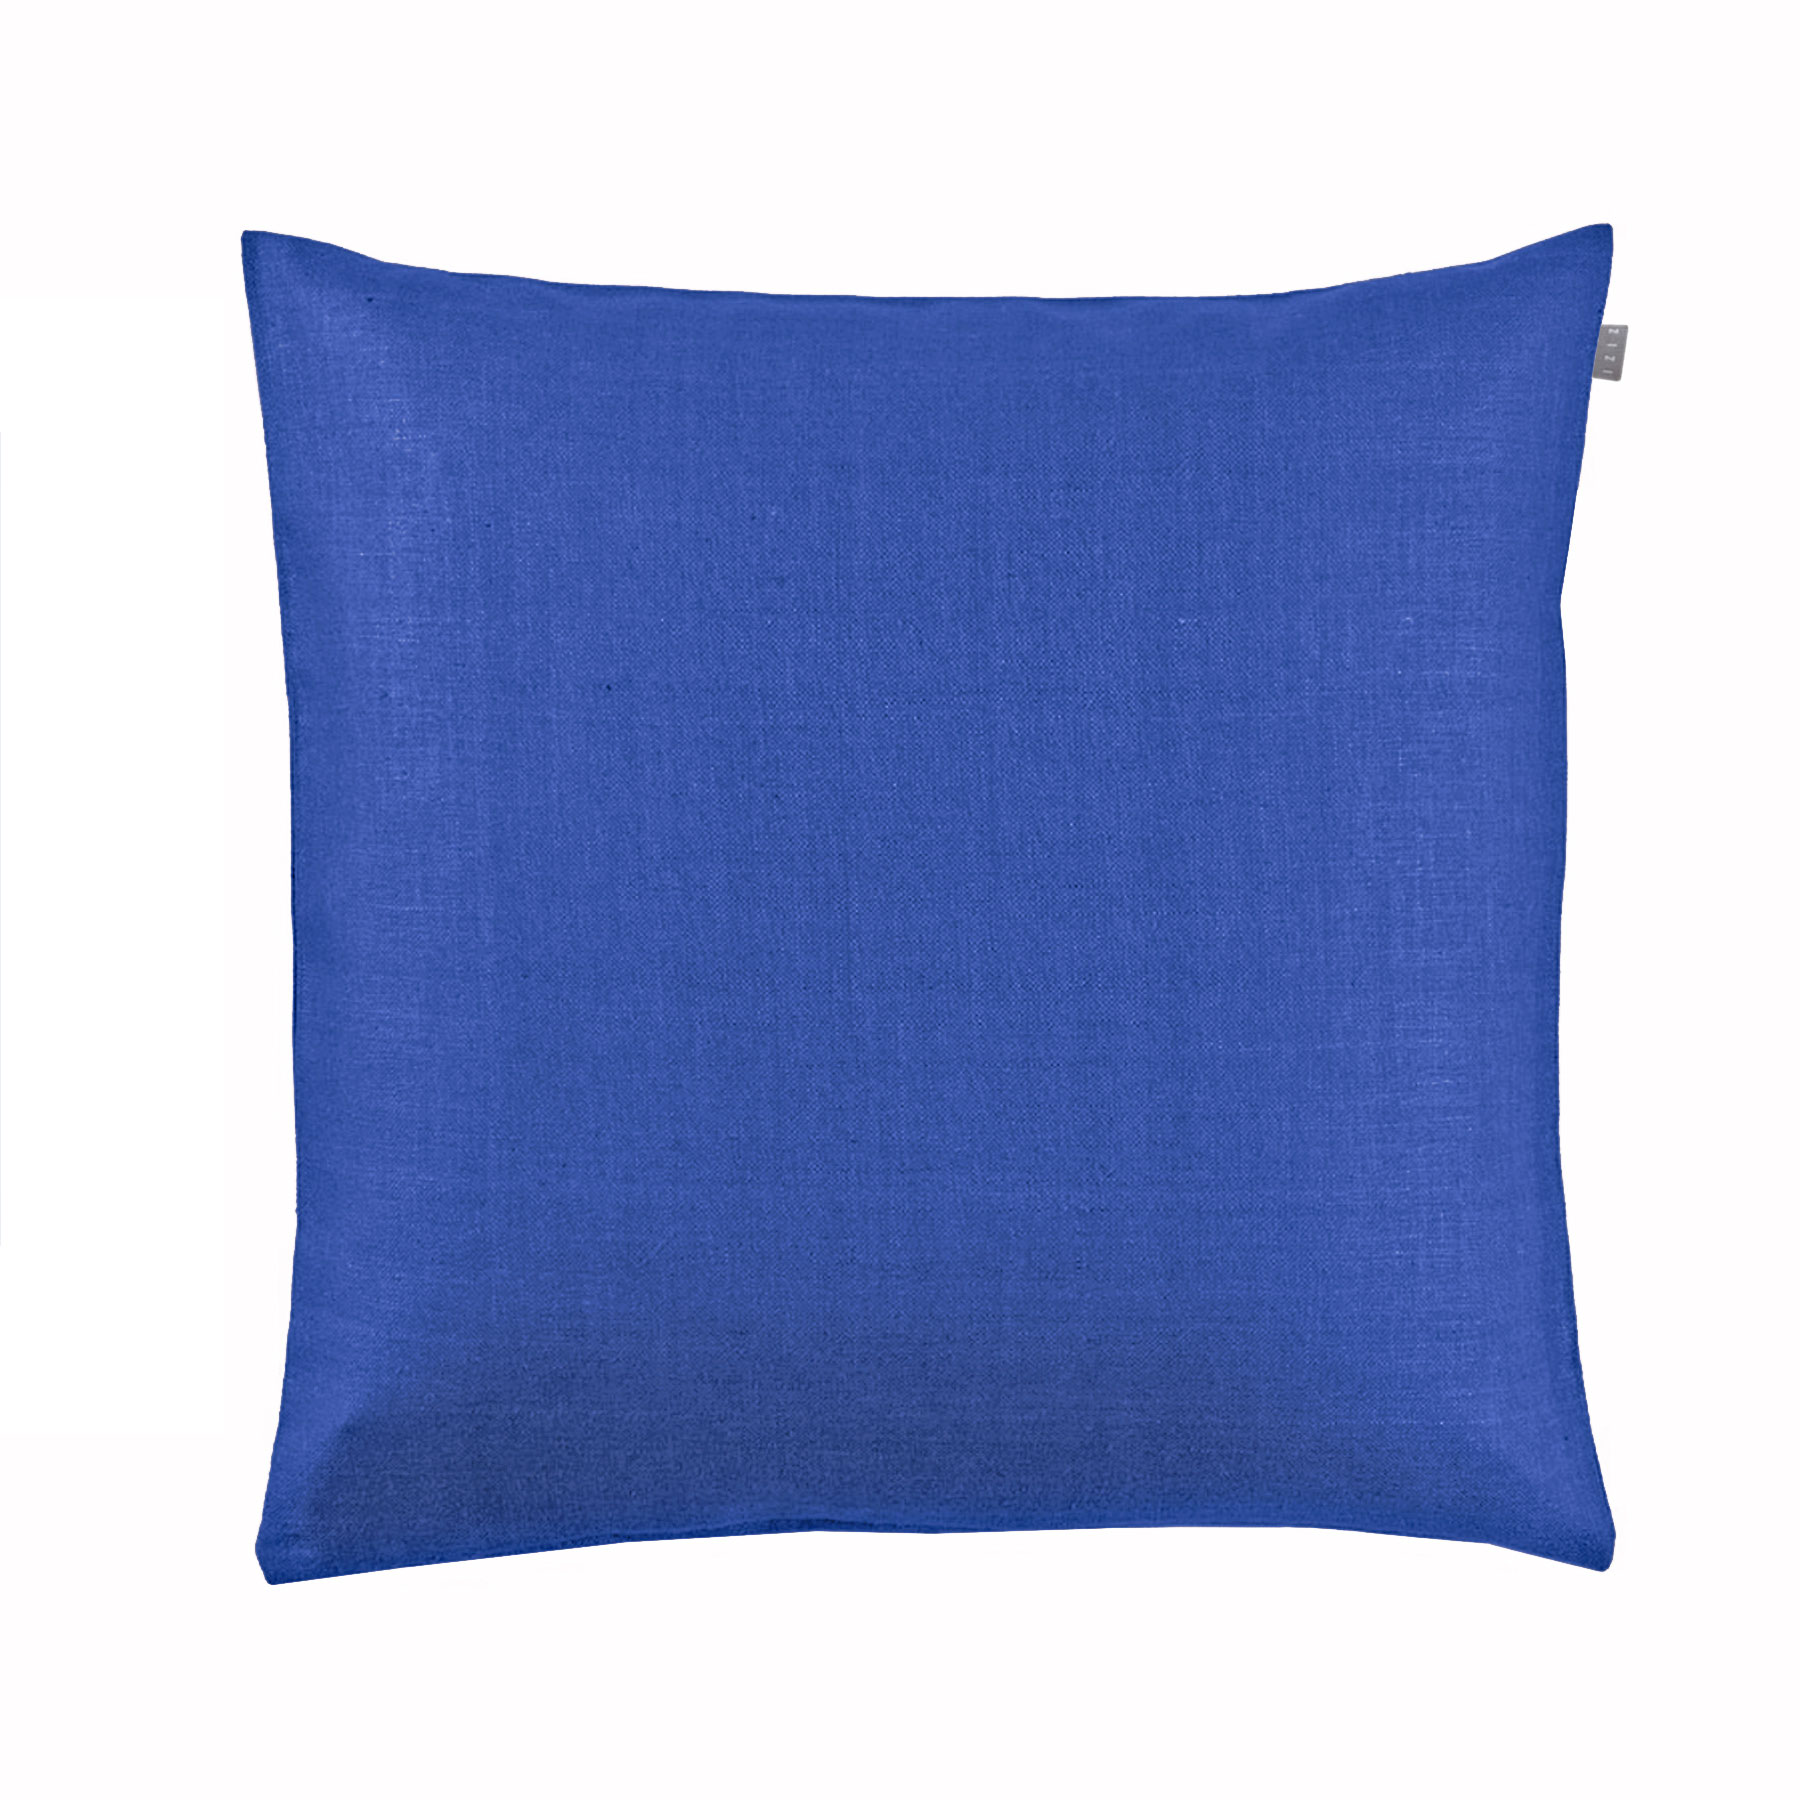 CUSHION COVER PLAIN <br />dazzling blue